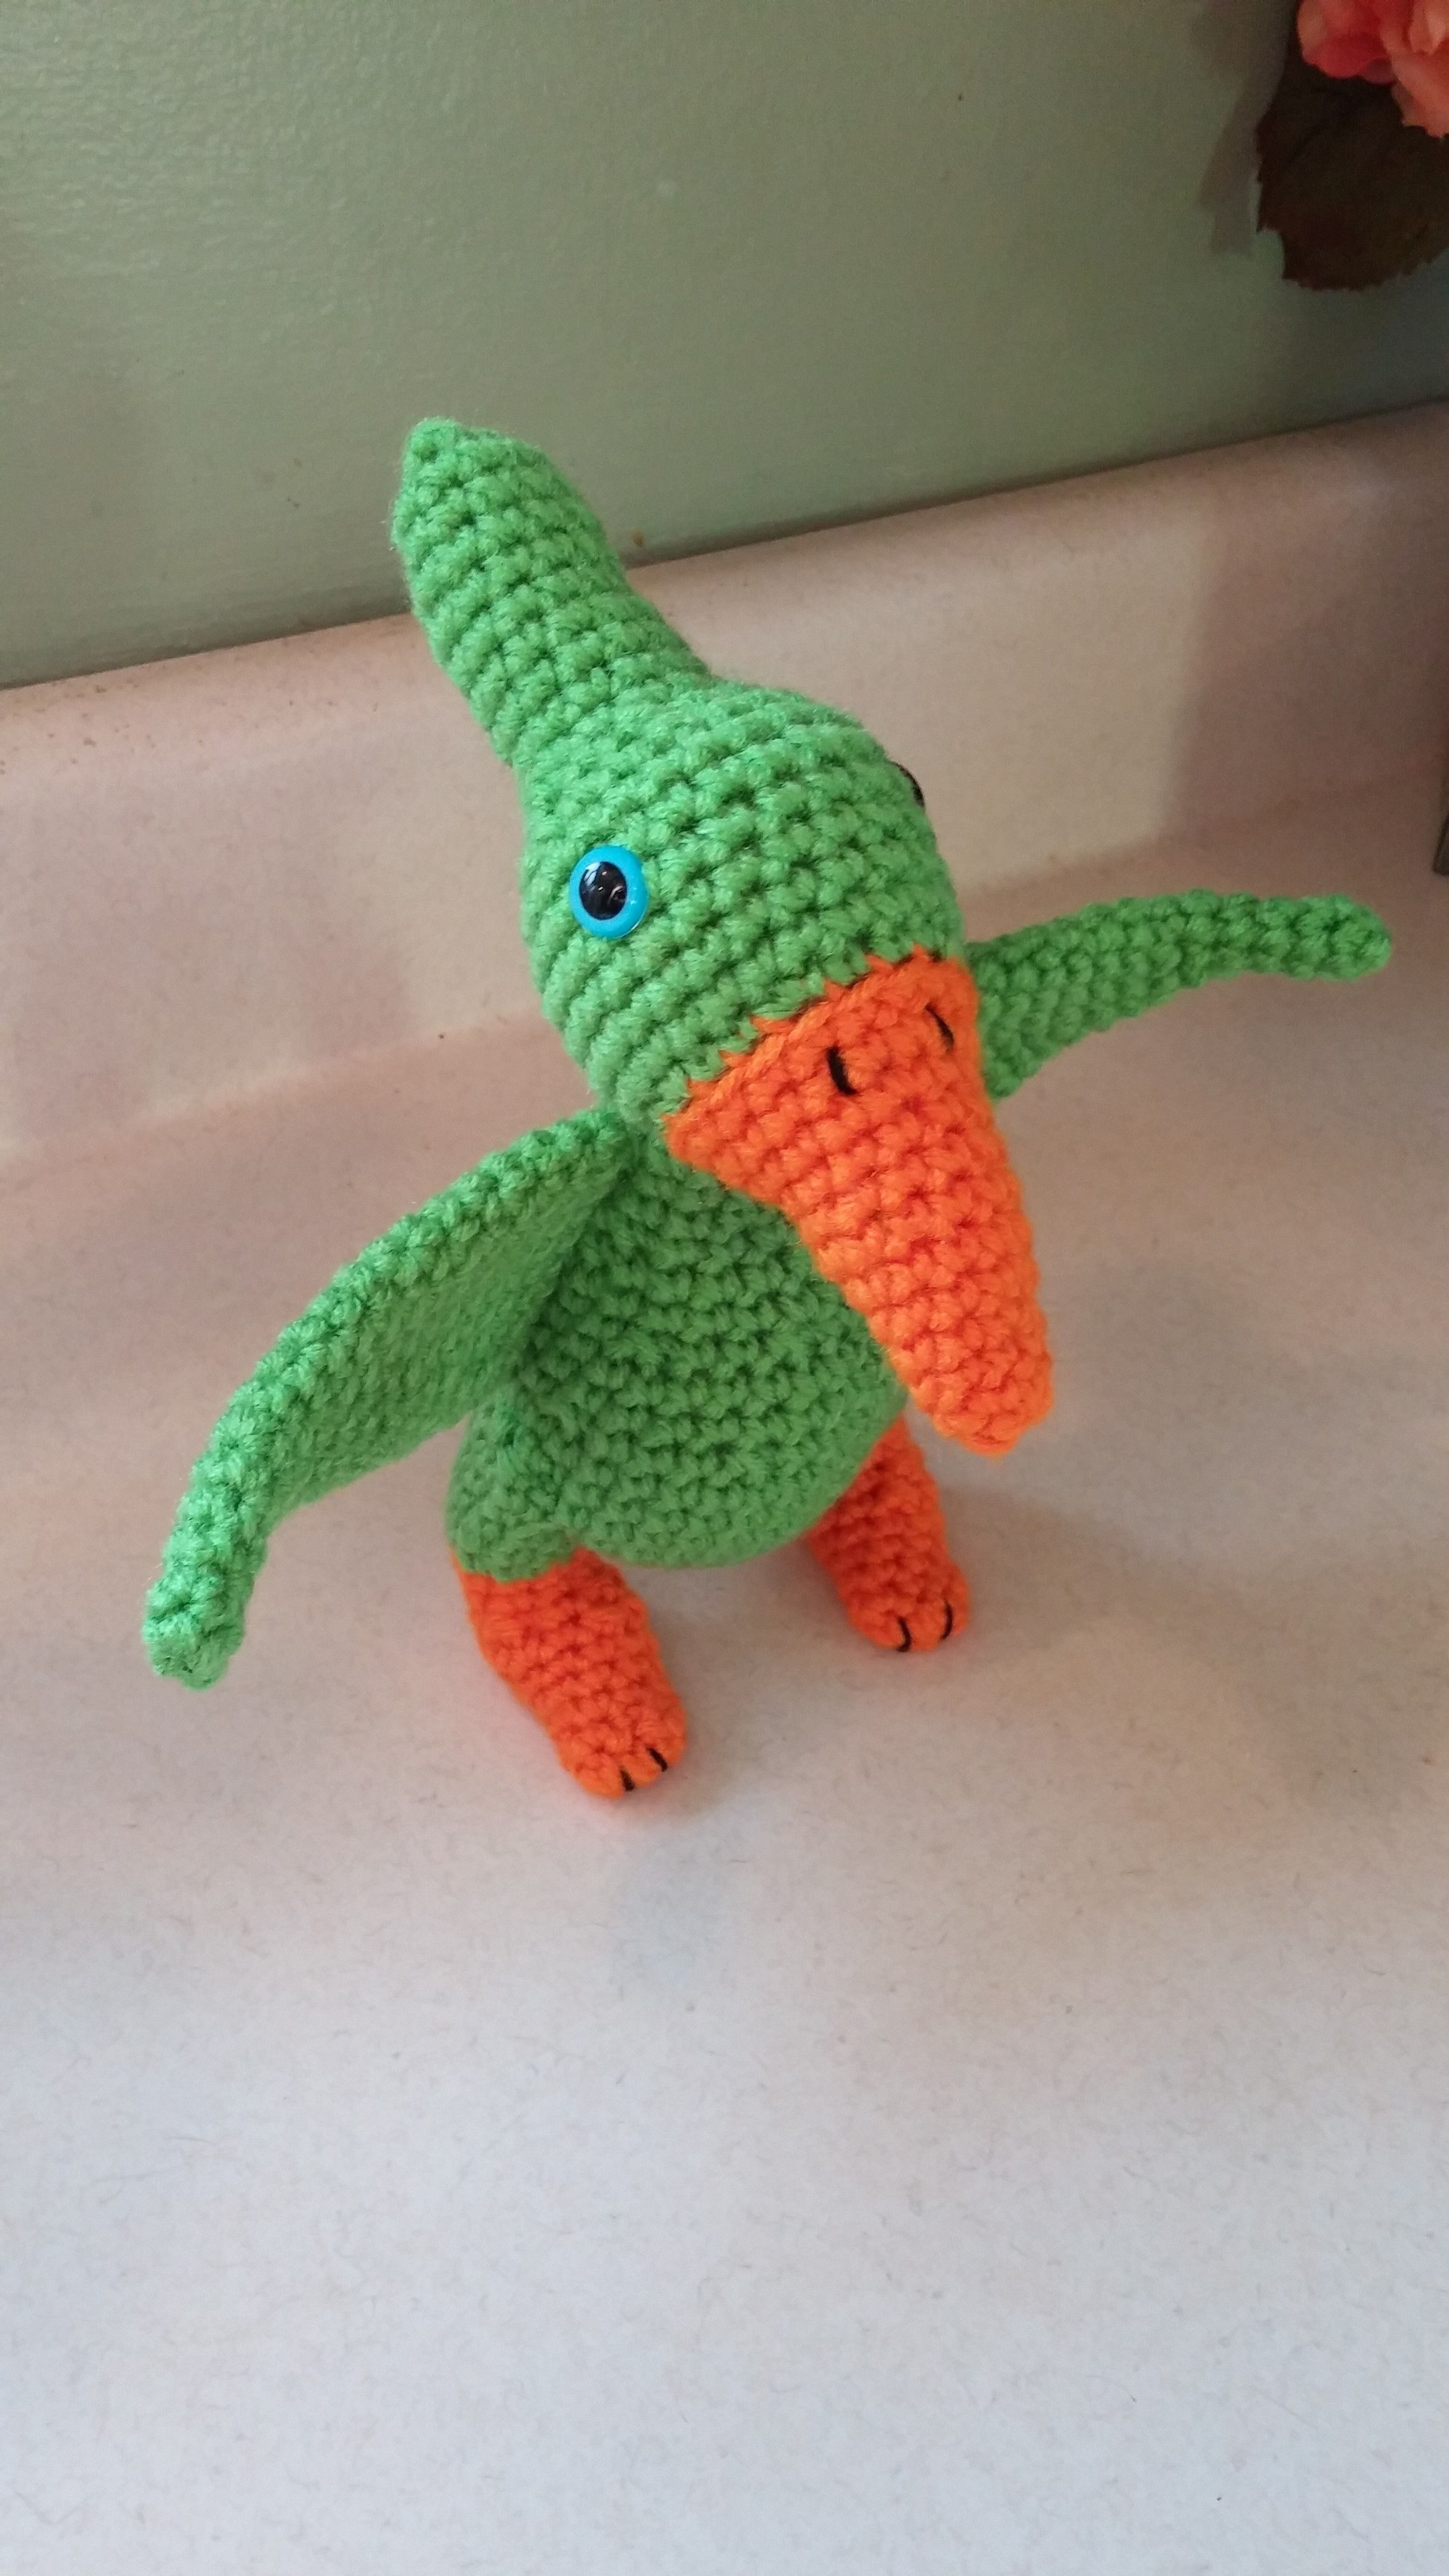 Crochet Amigurumi Pterodactyl Green Dinosaur | Crocheting fun ...